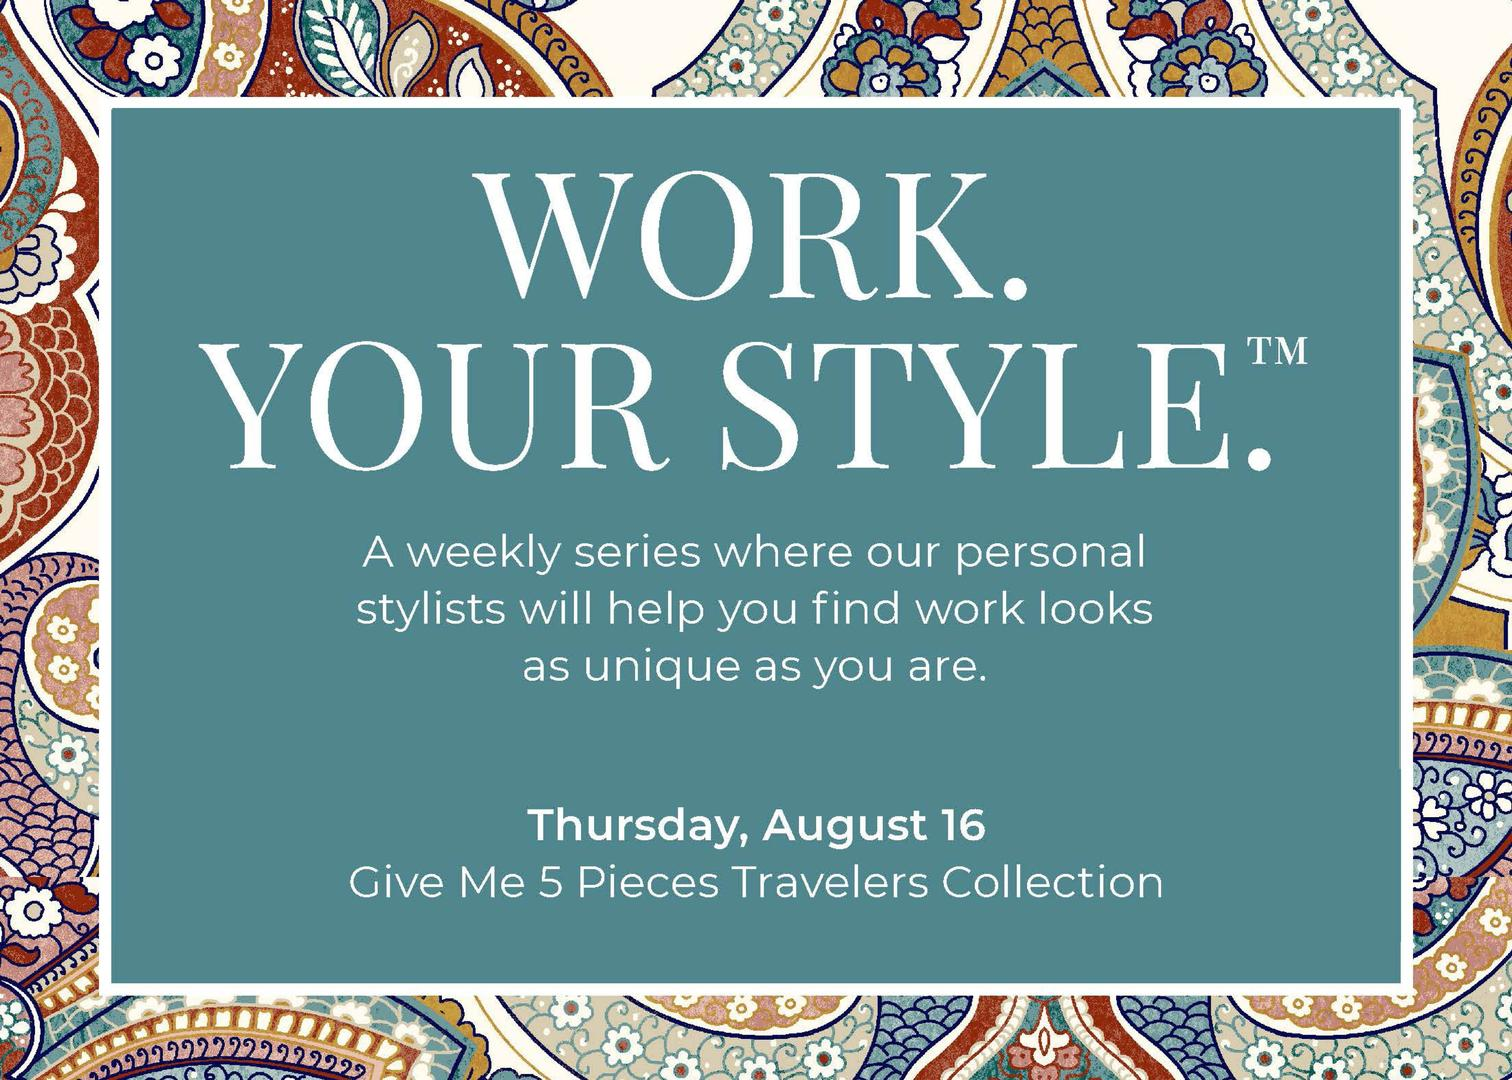 Parkway Place, Work You Style- Give Me 5 Pieces Travelers Collection  Event Image: 2801 Memorial Parkway SW, Spc 189, Huntsville, AL 35801, US